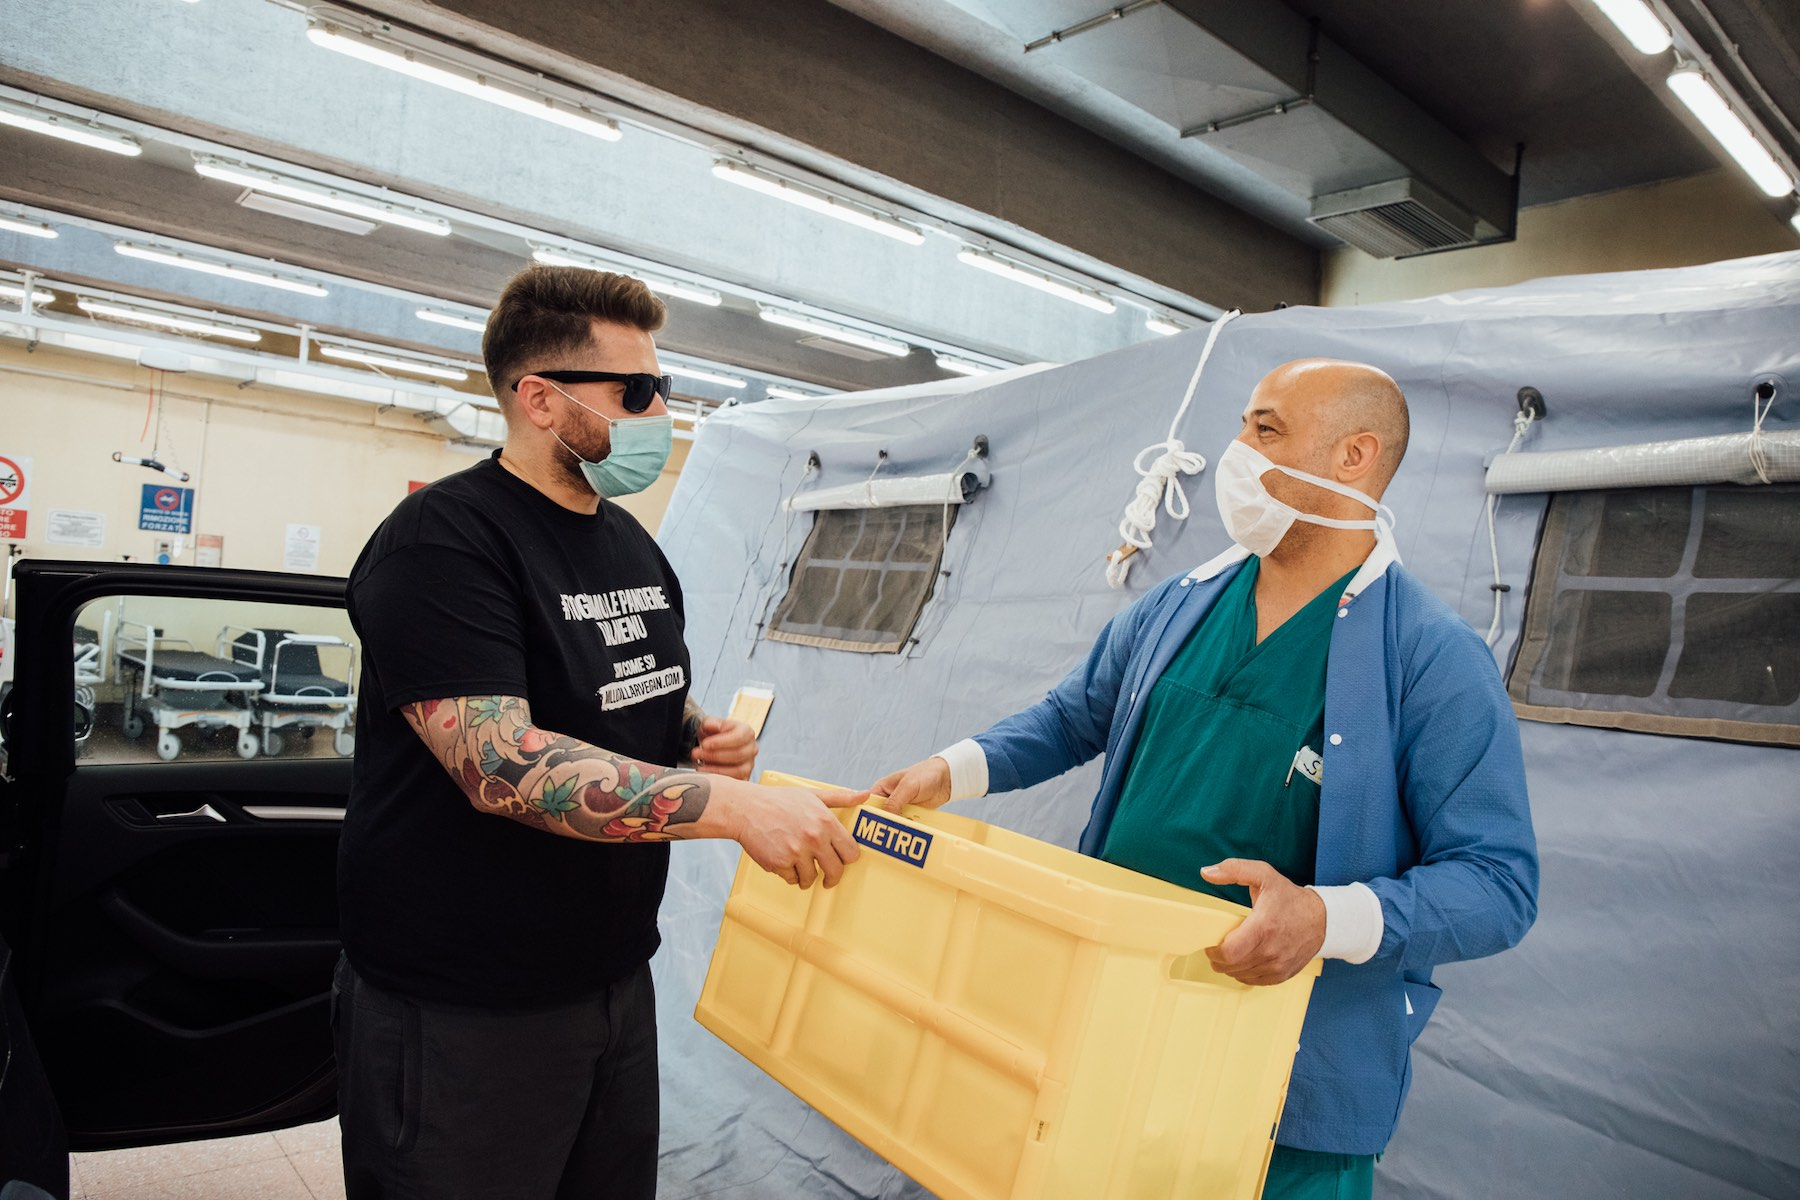 Delivering vegan food to hospitals in Italy